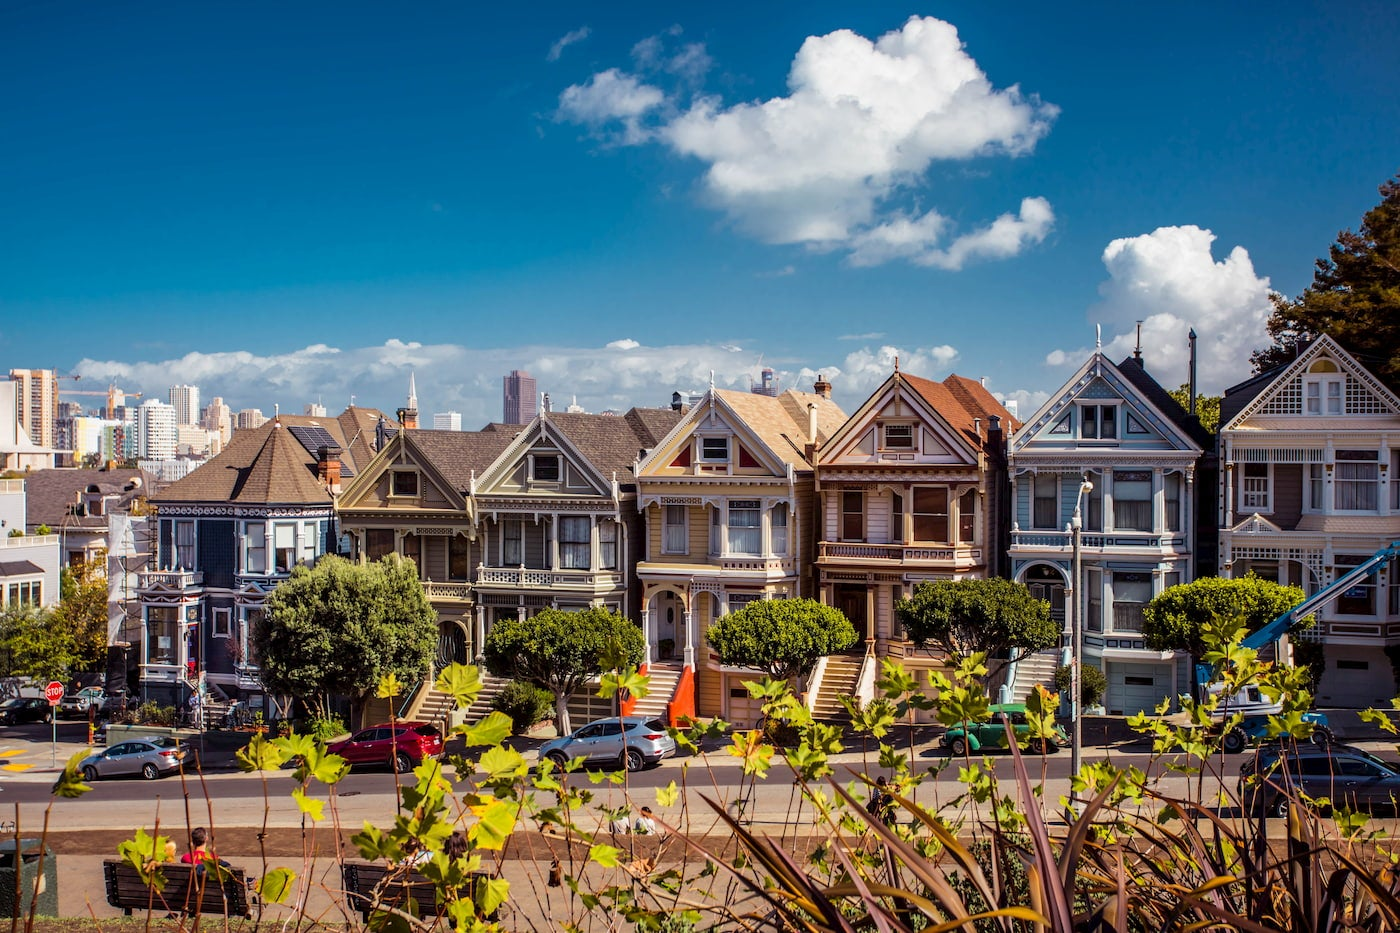 Houses along a block in San Francisco.